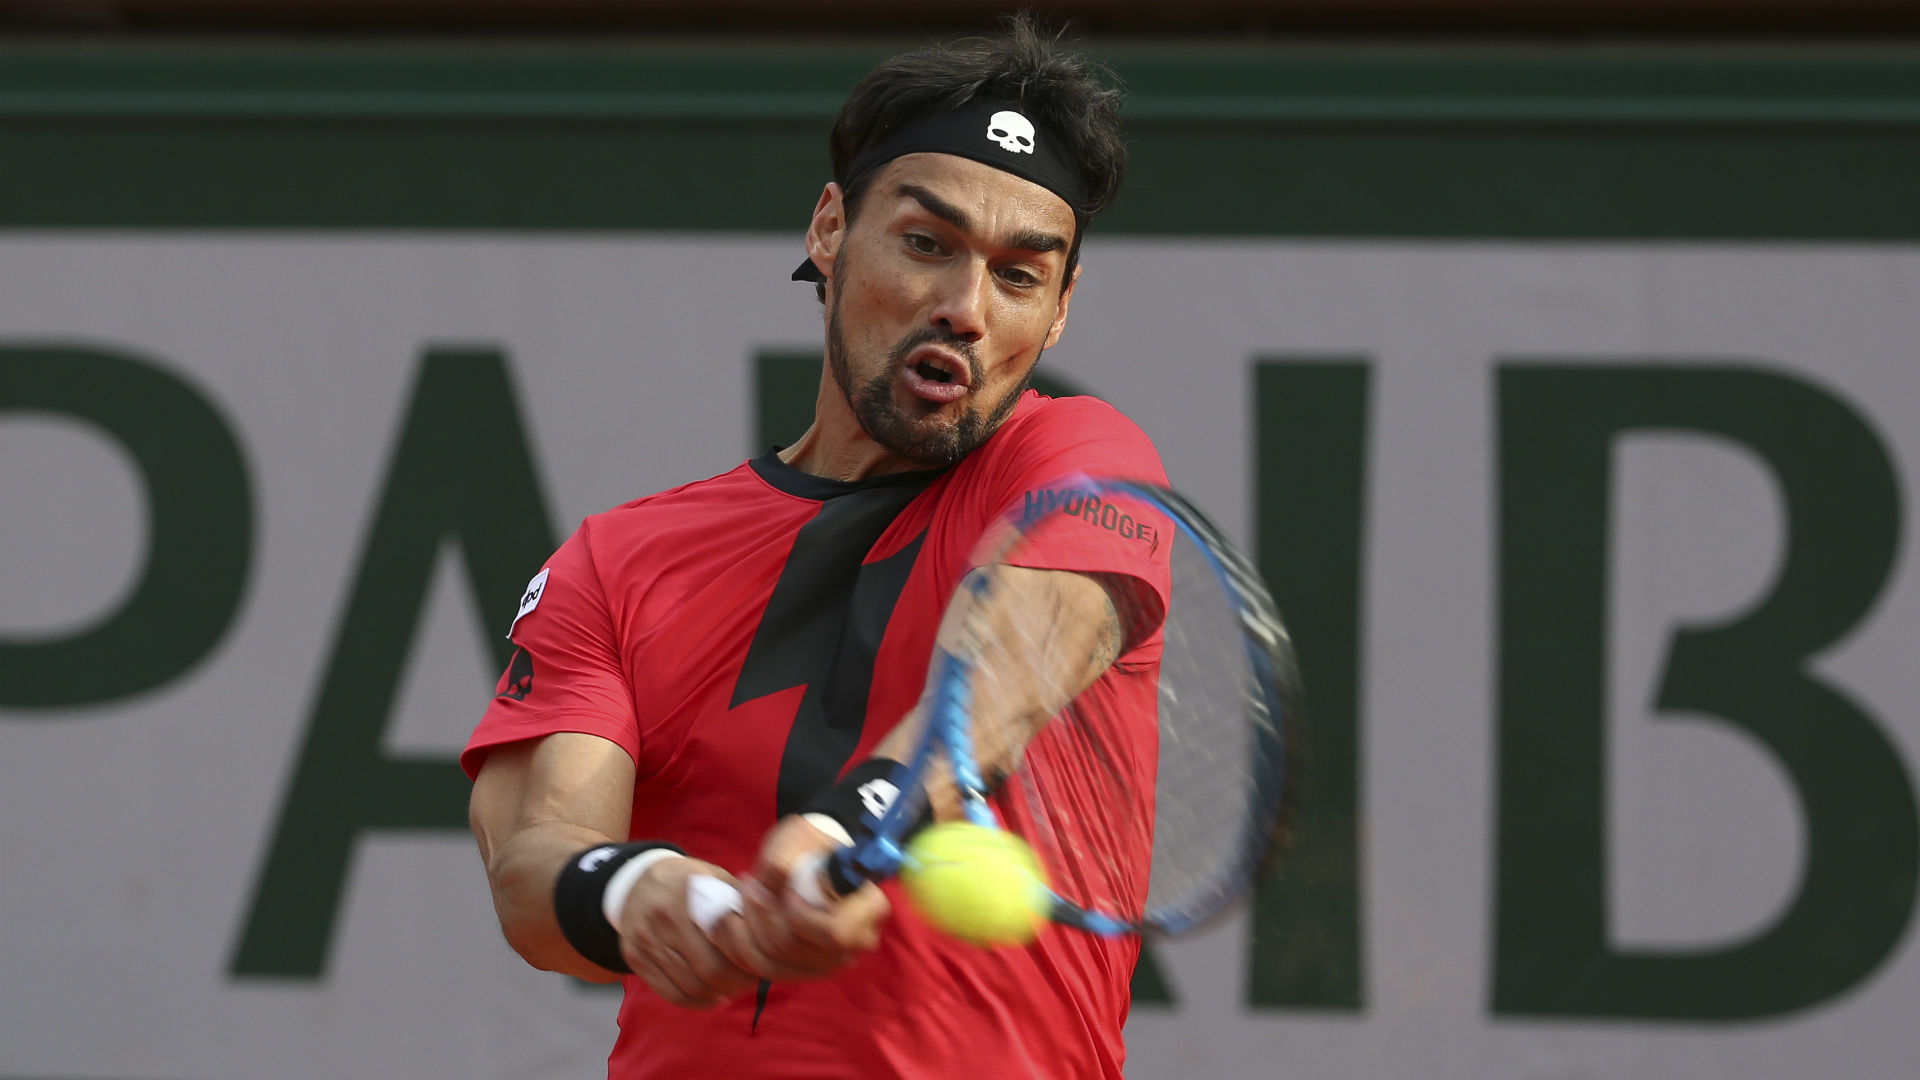 Fognini to have arthroscopic surgery on both ankles